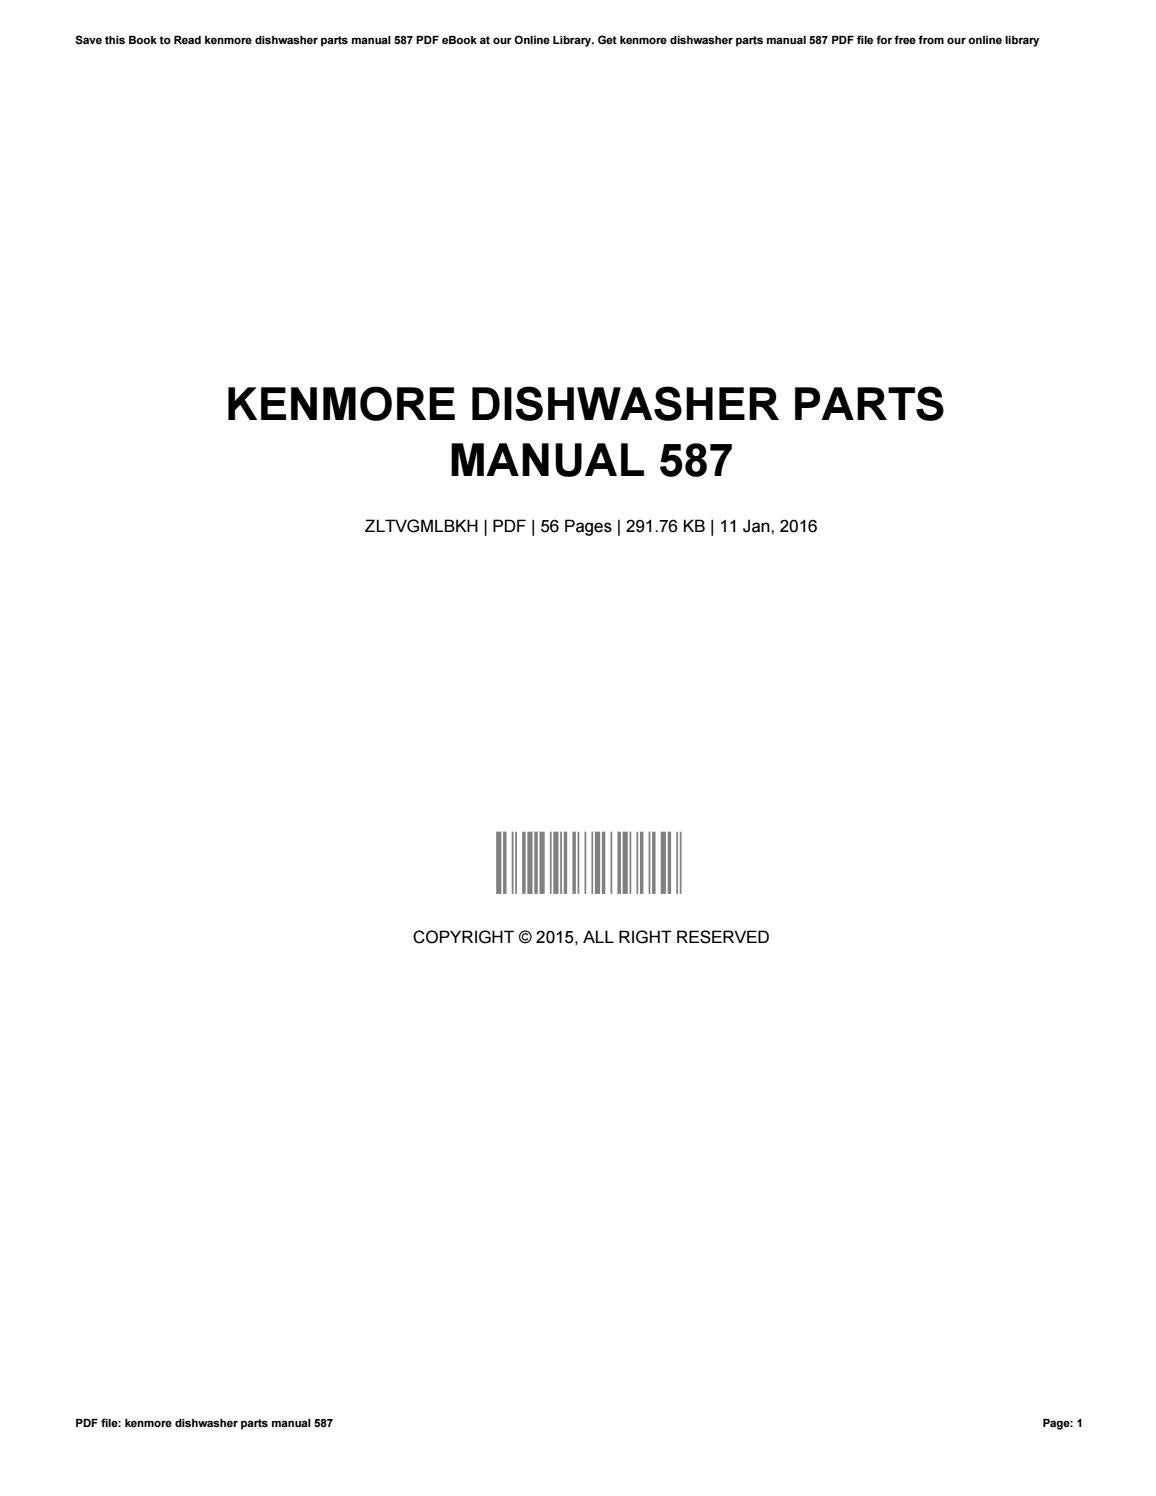 Kenmore dishwasher parts manual 587 by danielwebster2096 issuu fandeluxe Gallery